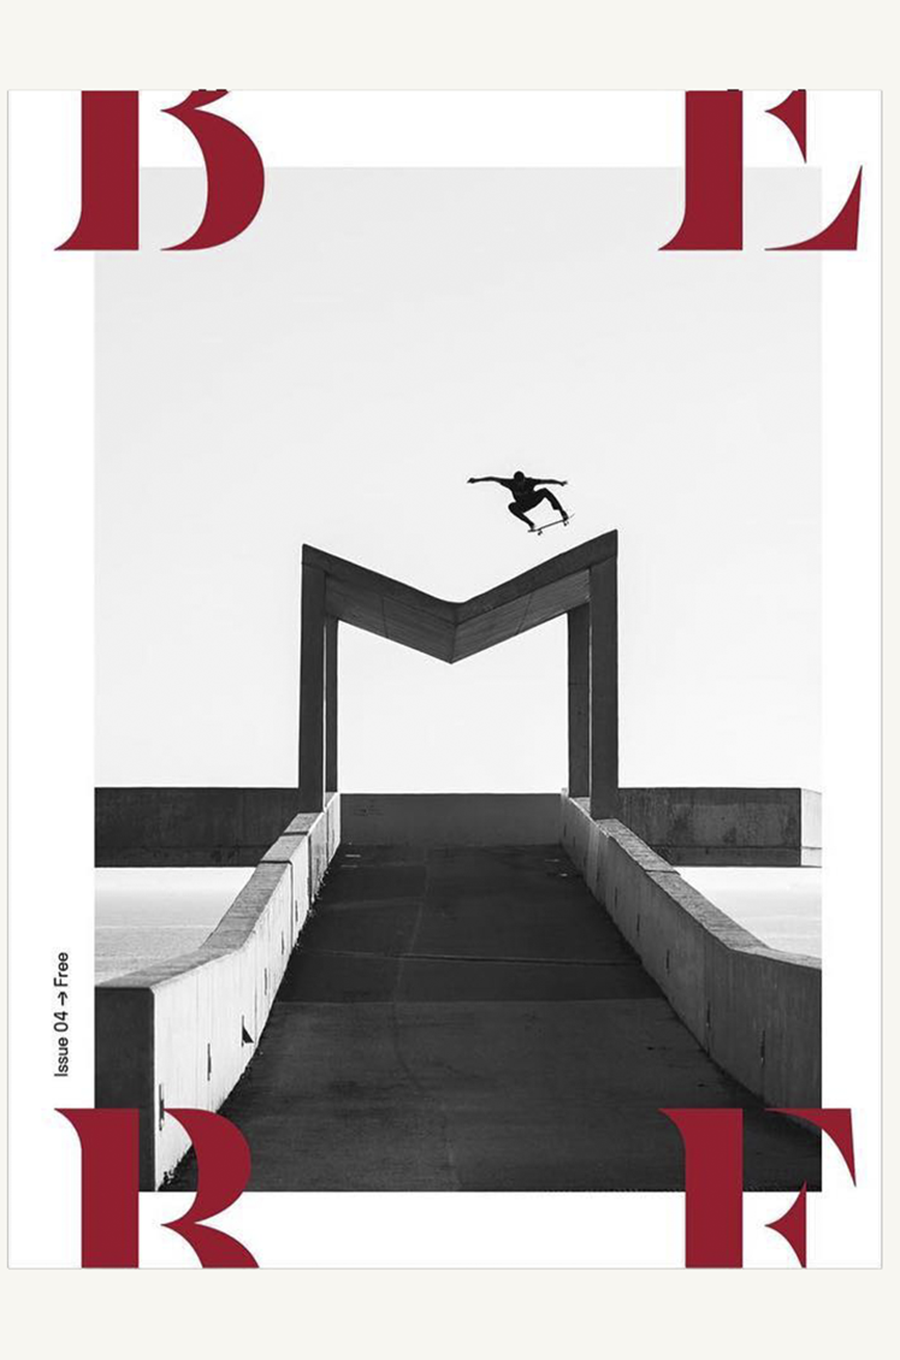 TIRED OF THE INTERNET? CHECK OUT THESE PRINTED SKATE MAGS